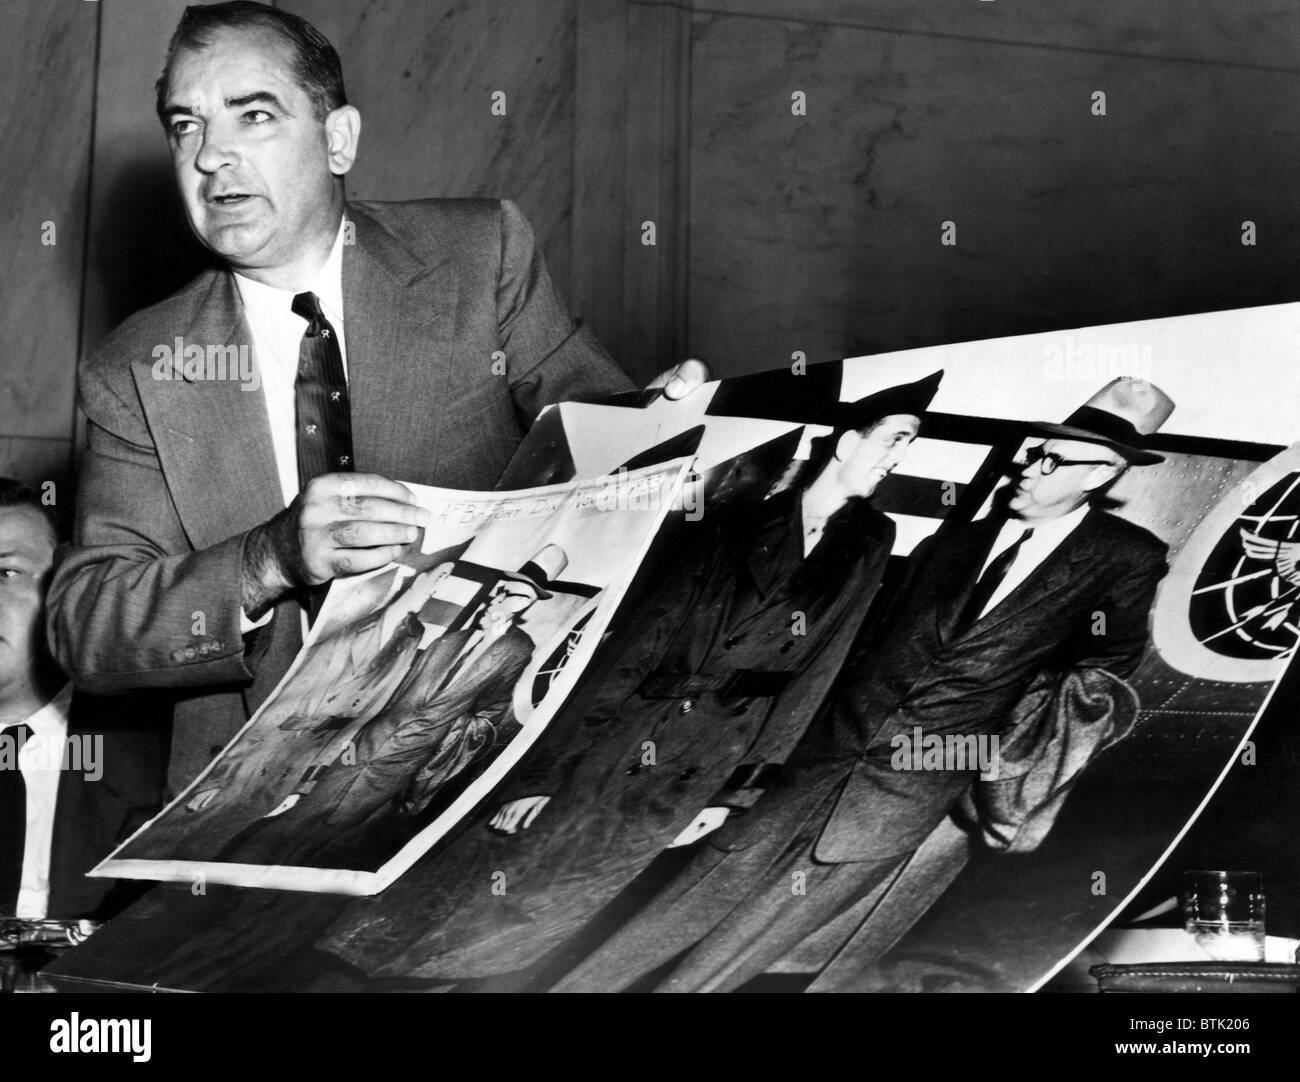 EV1816 - Senator Joseph McCarthy showing a cropped photo that he claims is 'evidence' of American Communist - Stock Image